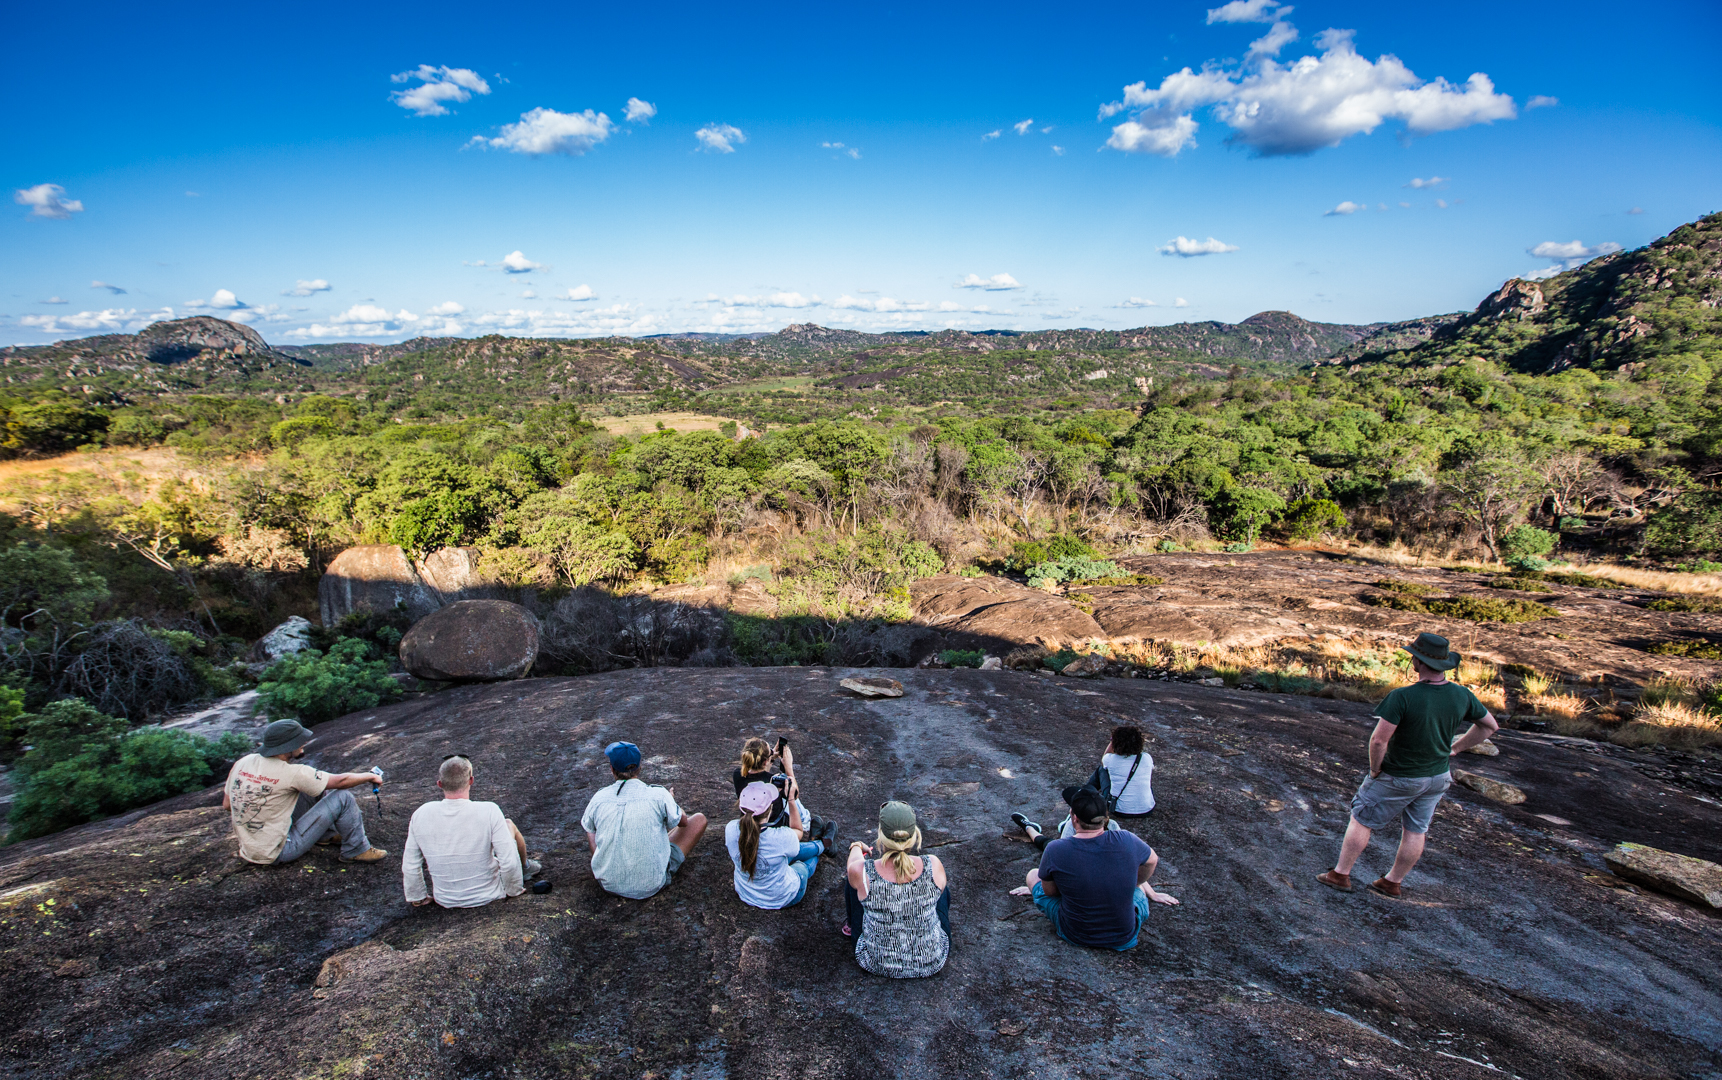 The views from the caves in Matobo National Park.